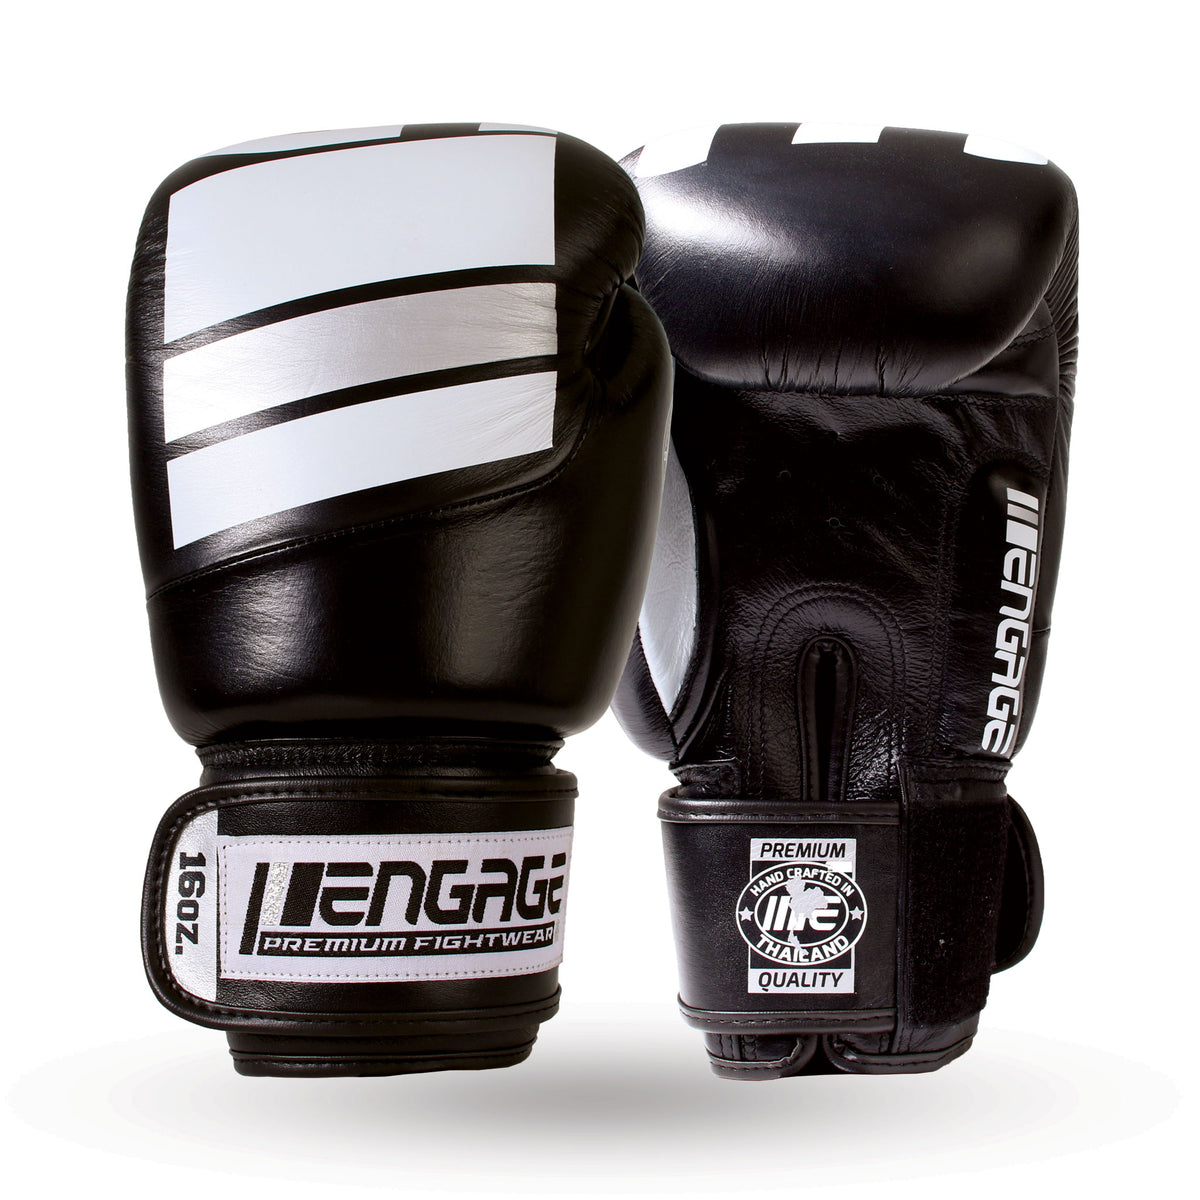 Engage Knights Boxing Gloves Gloves Engage MMA Online Fight Store for Apparel, Fightwear and Fight Gear Equipment